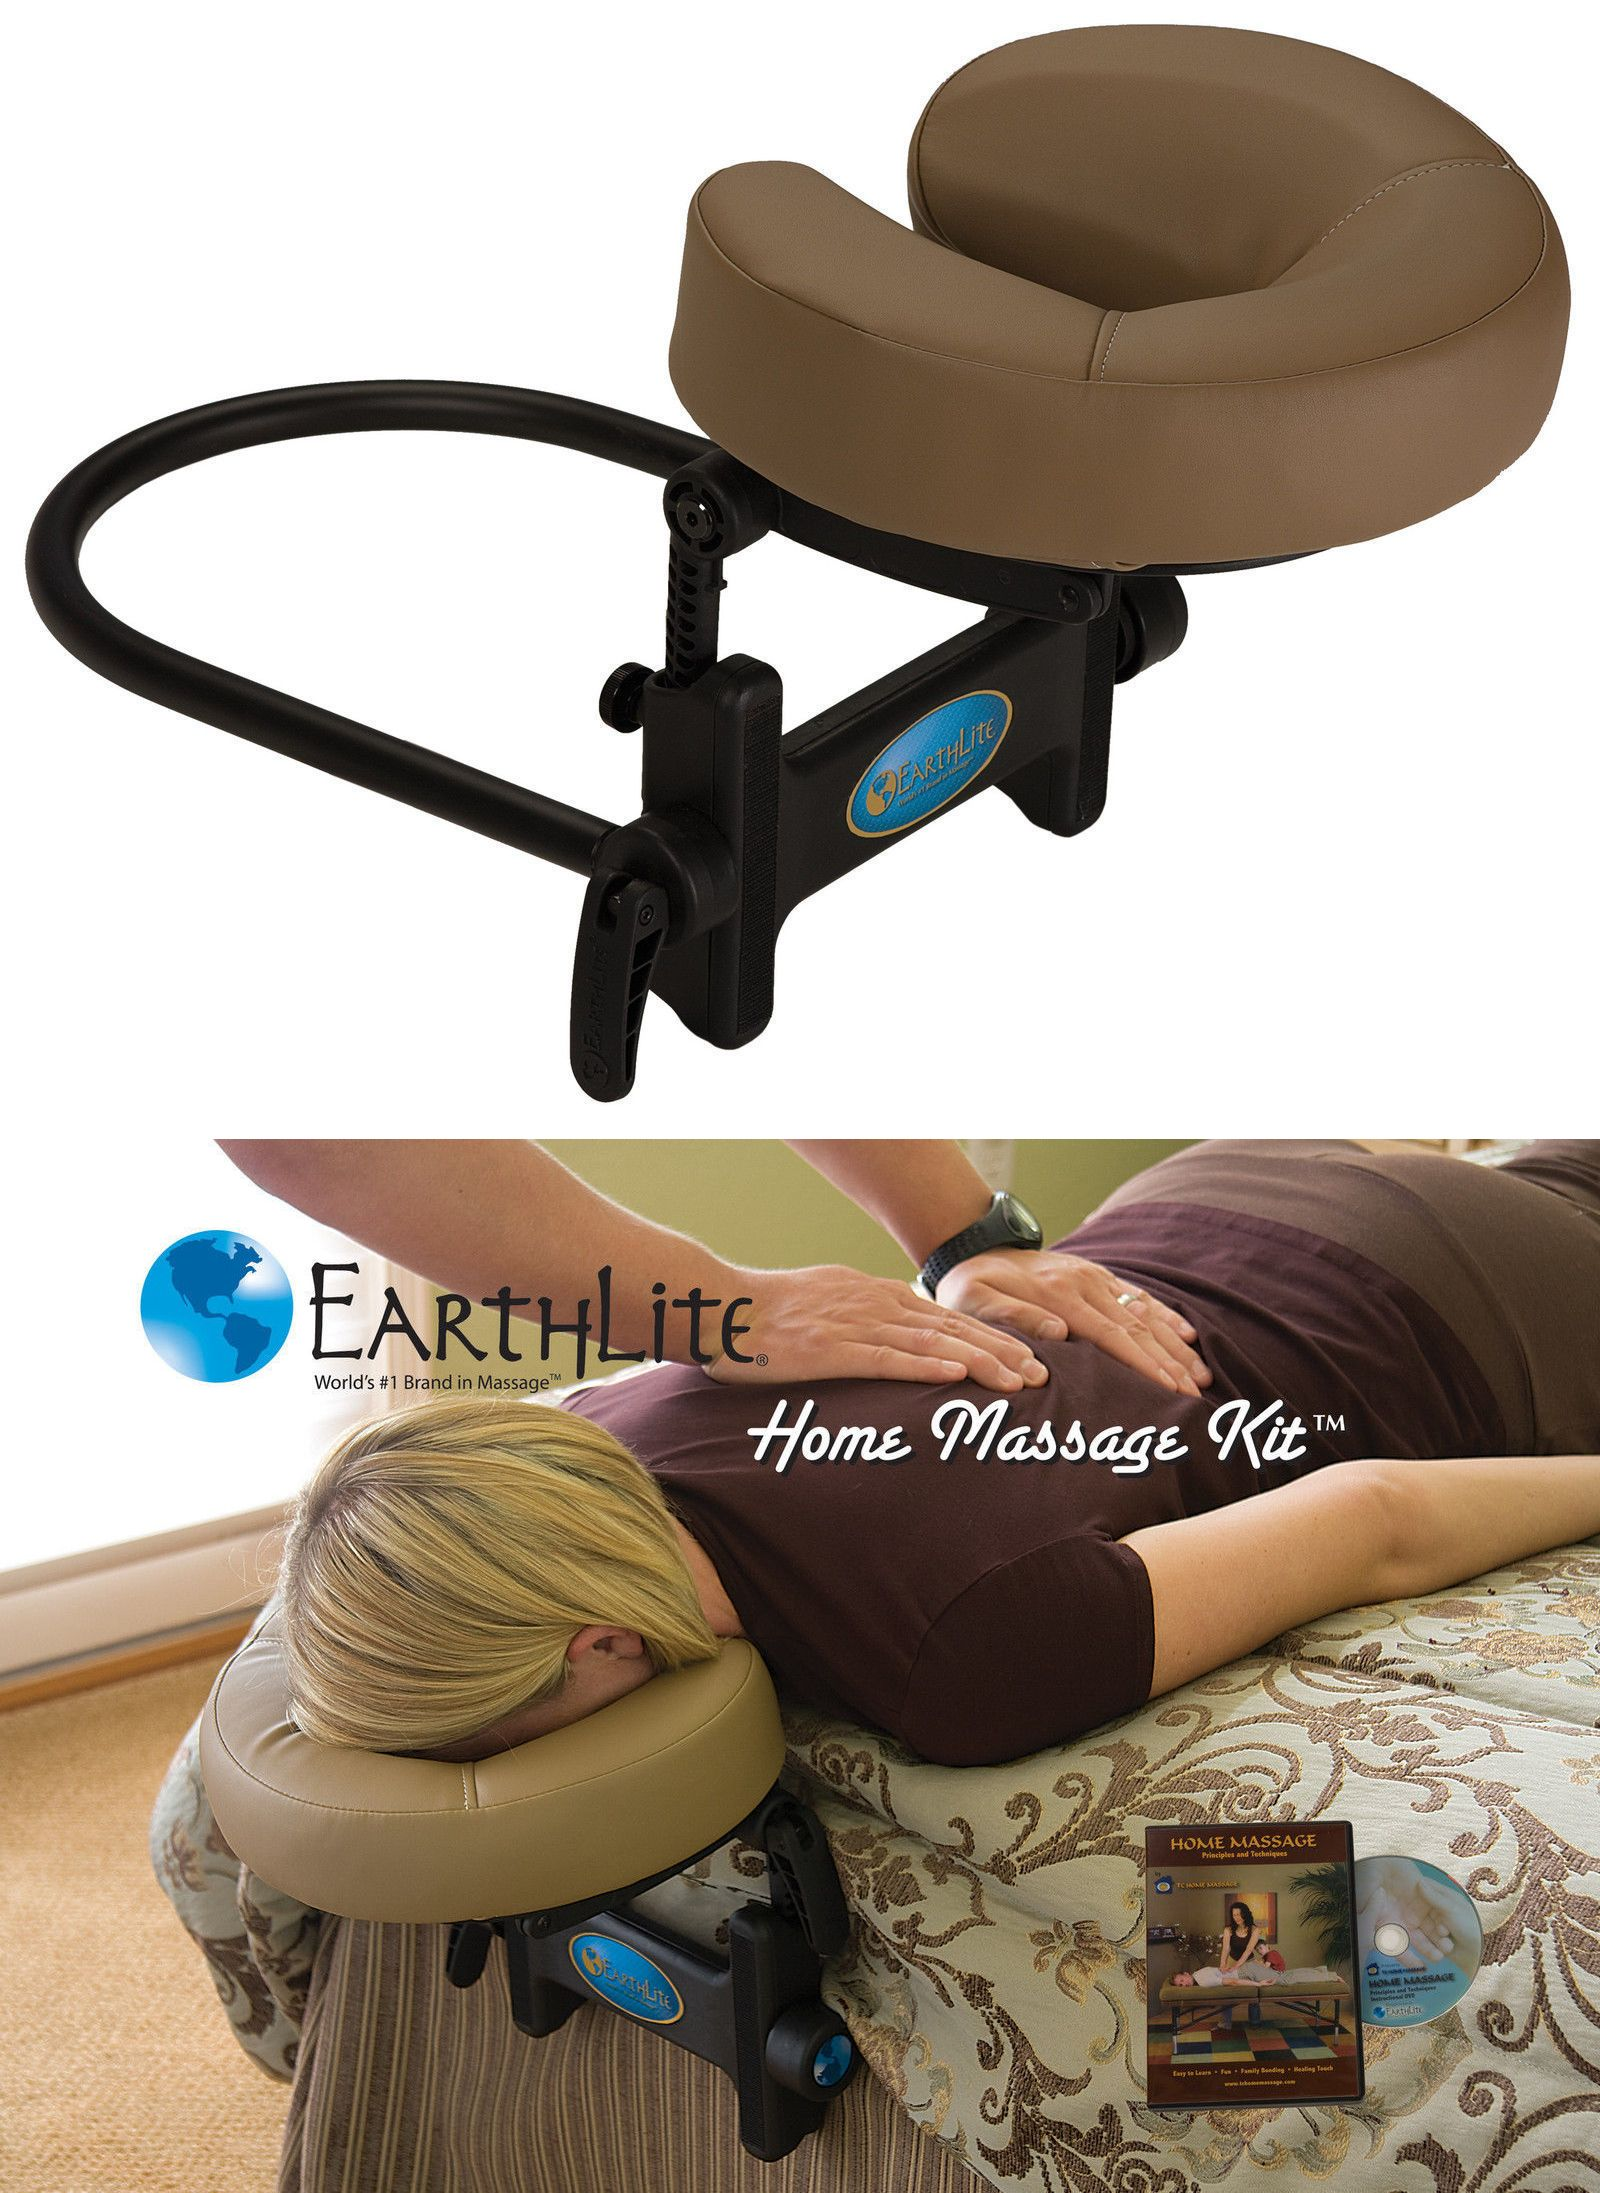 Other Massage Equipment and Accs Earthlite Home Massage Kit